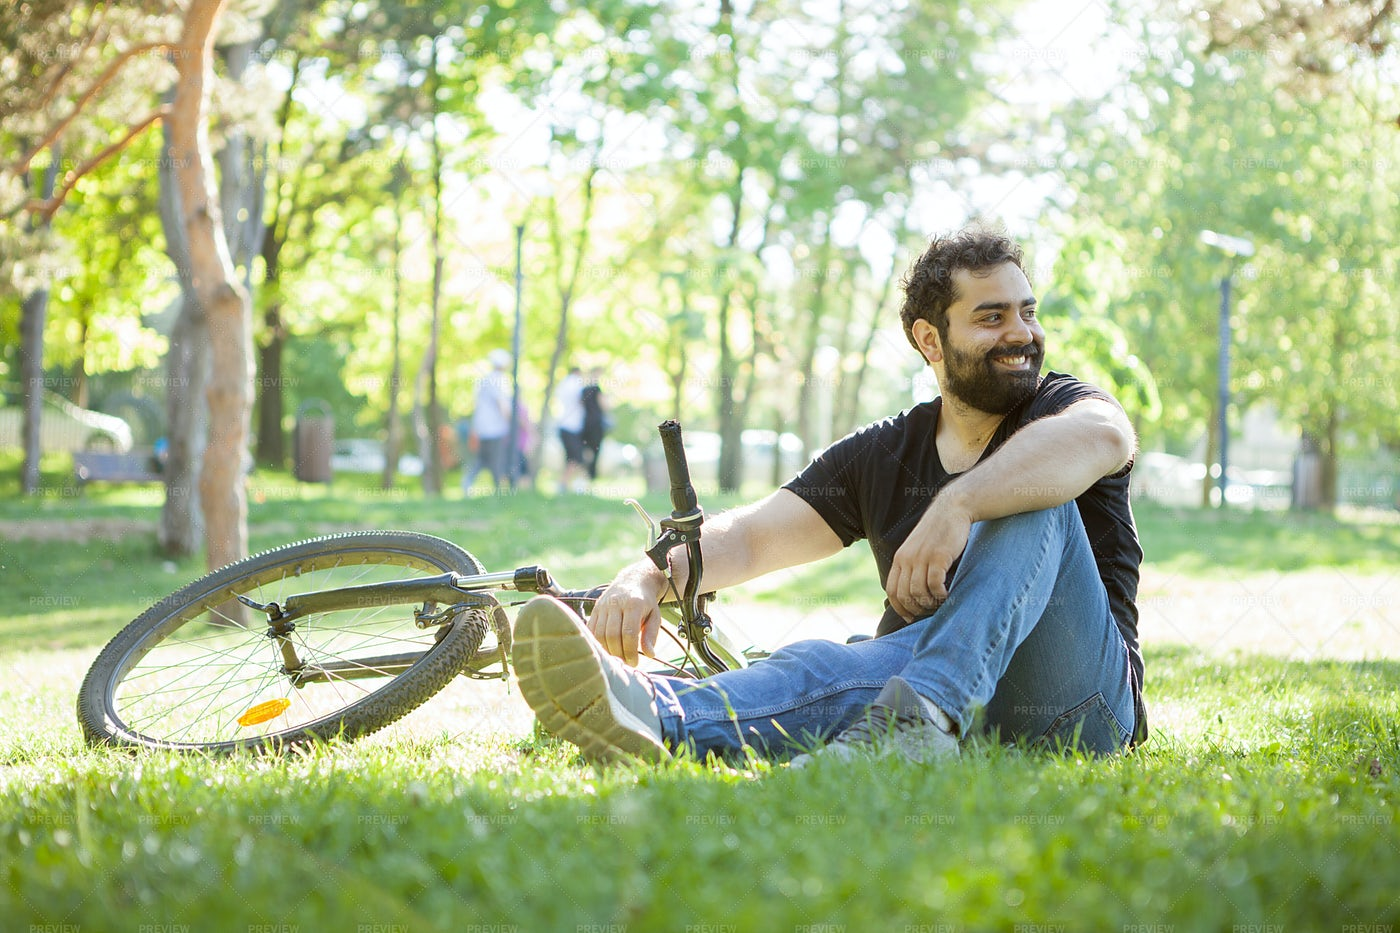 Bicycle At The Park: Stock Photos